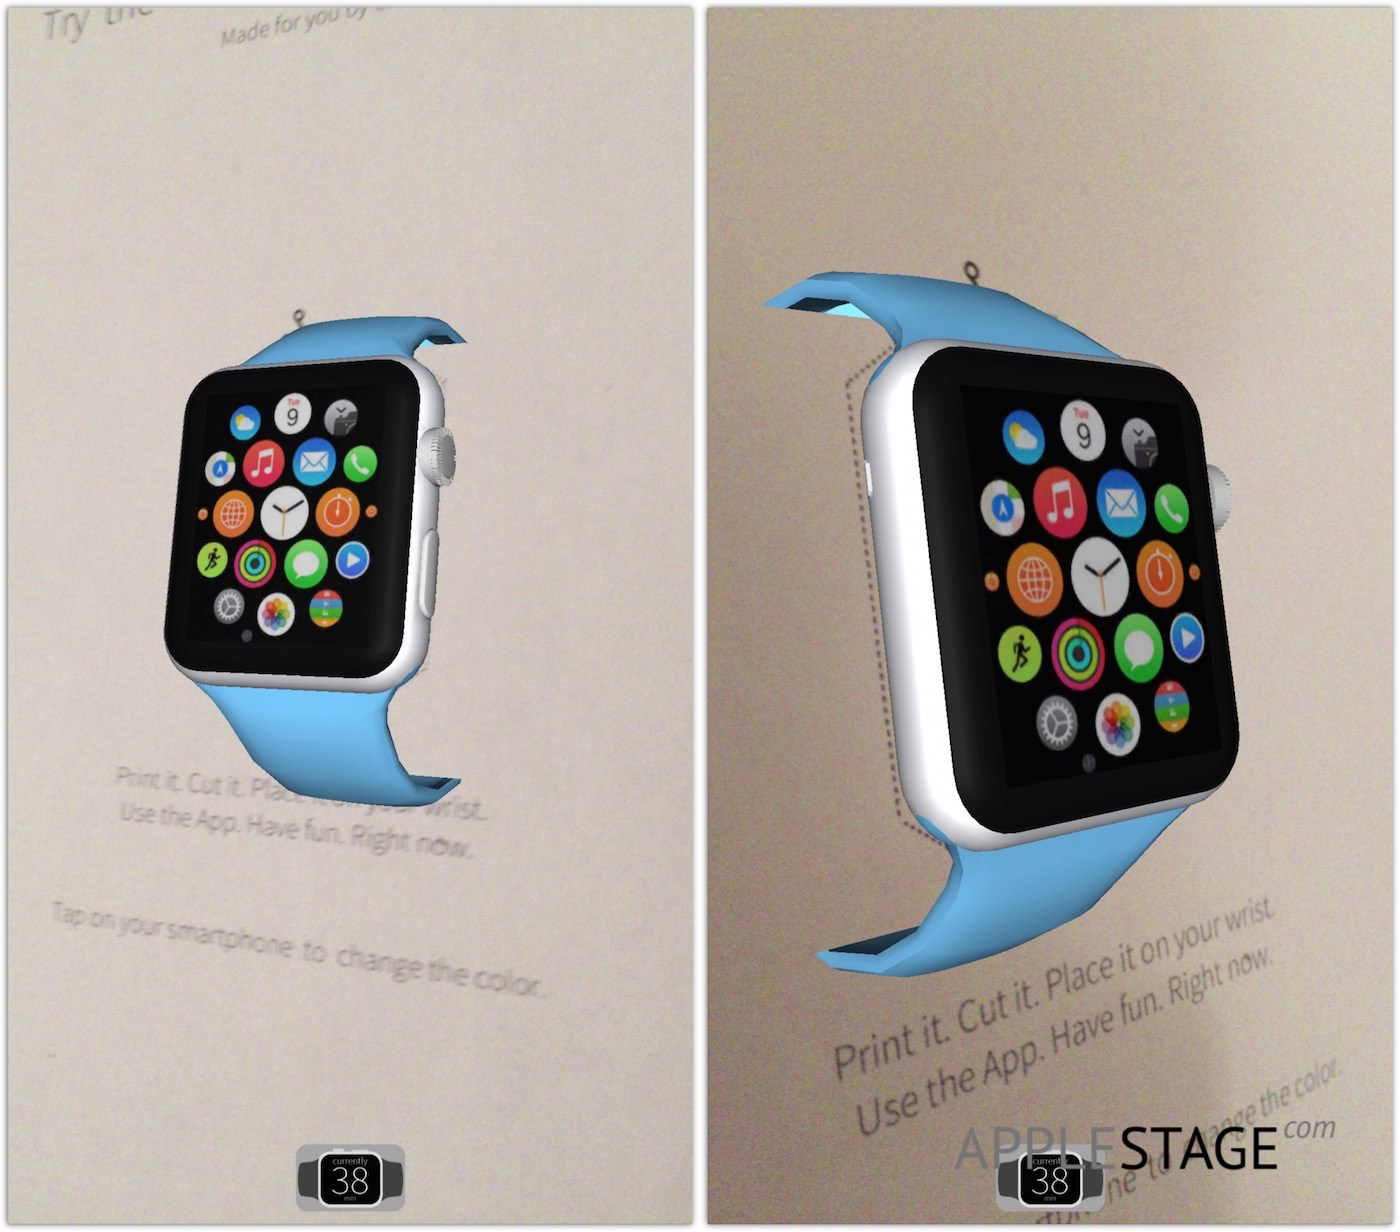 Apple Watch Russia iOS 8 App Store Iphone ipad Ipod Touch